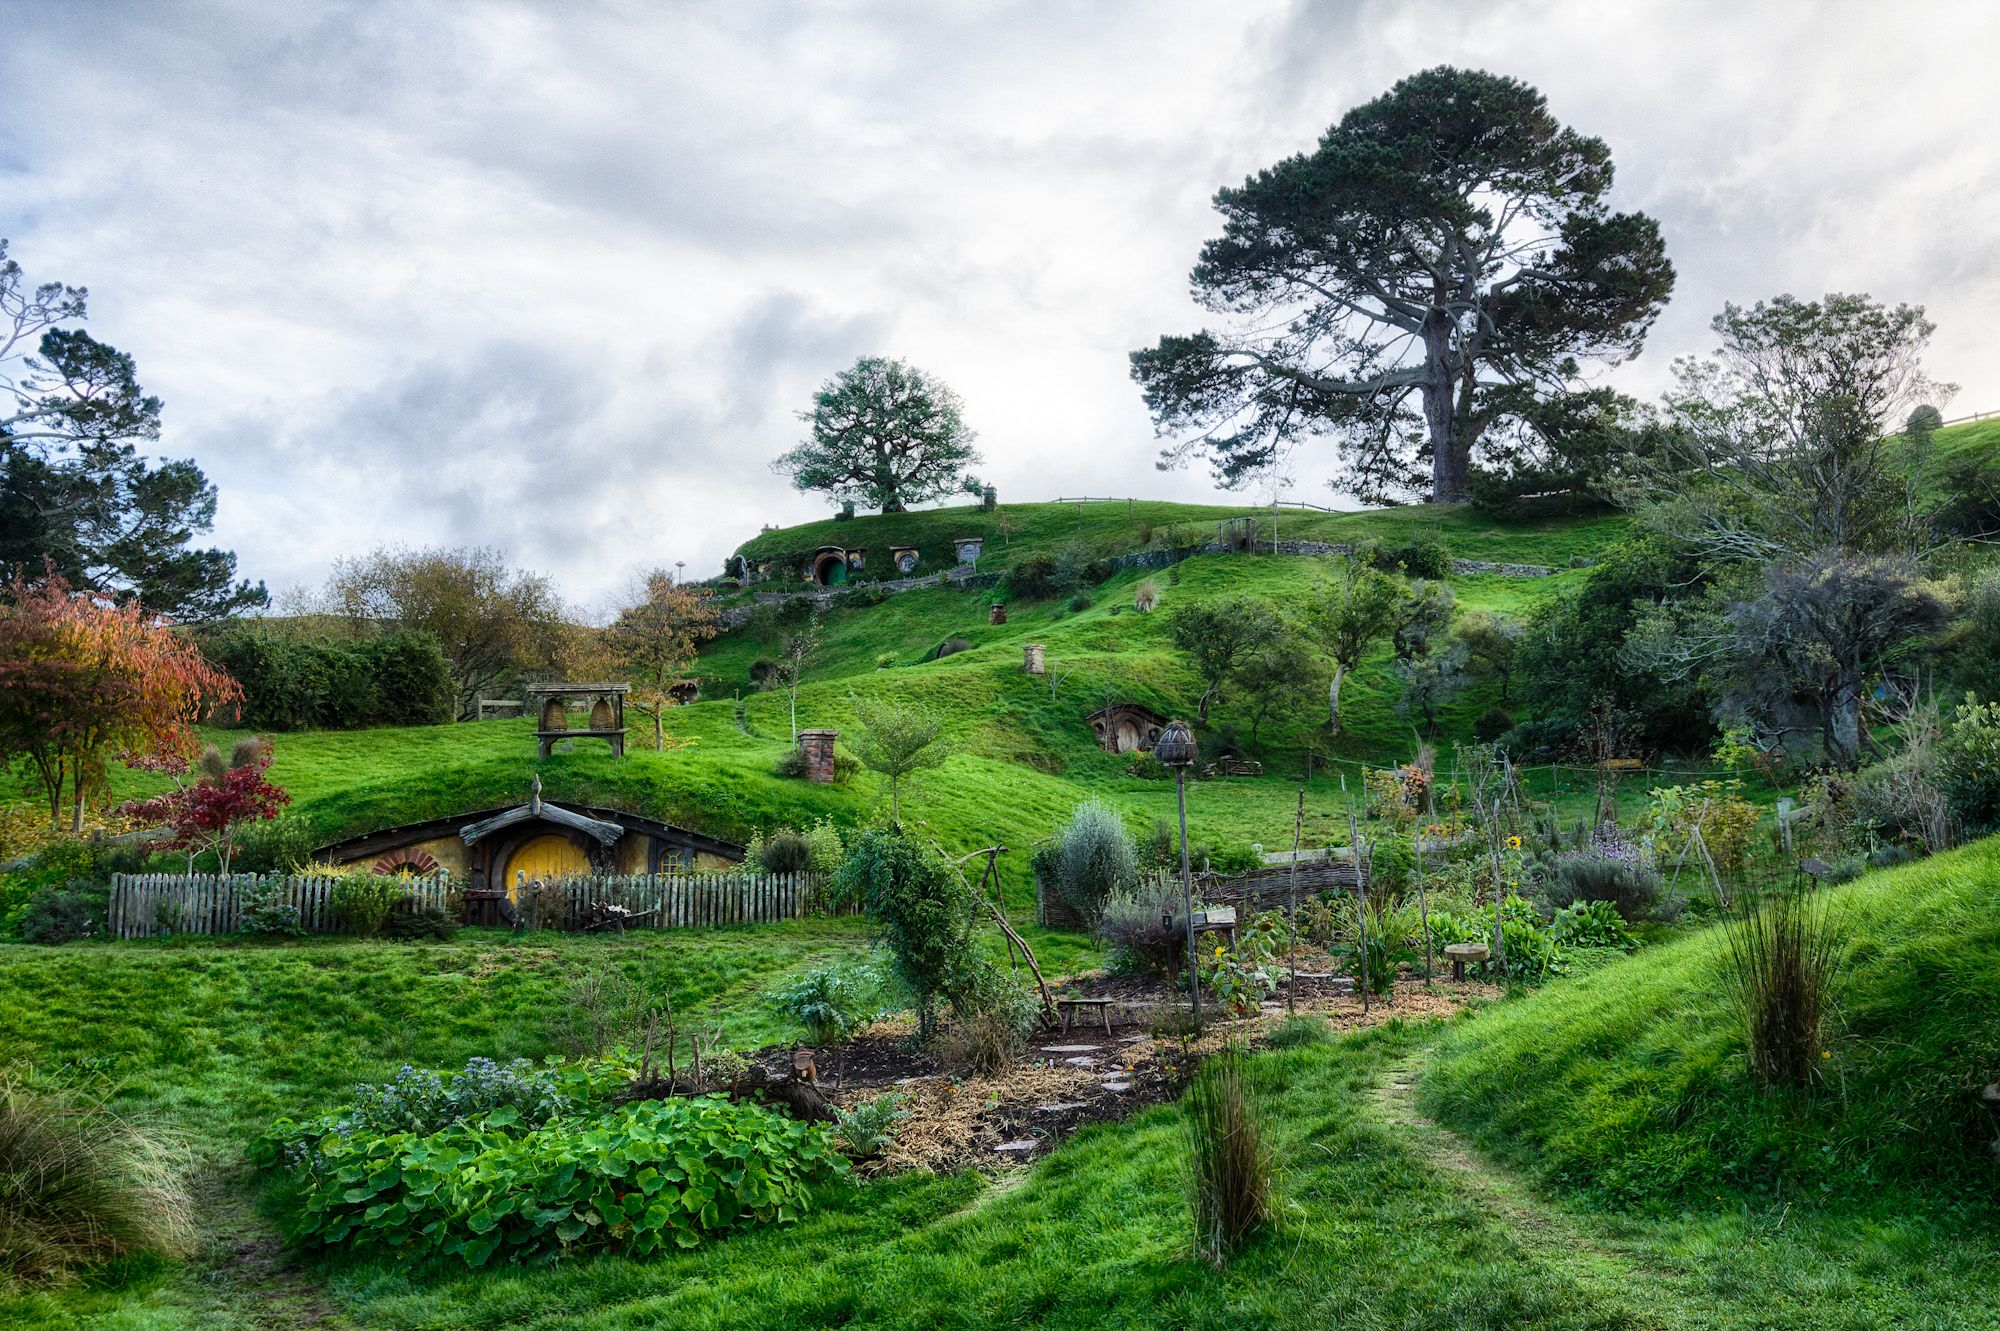 Hobbiton (film set) Matamata NZ The Shire where hobbits from J.Tolkien Lord  of the rings lived